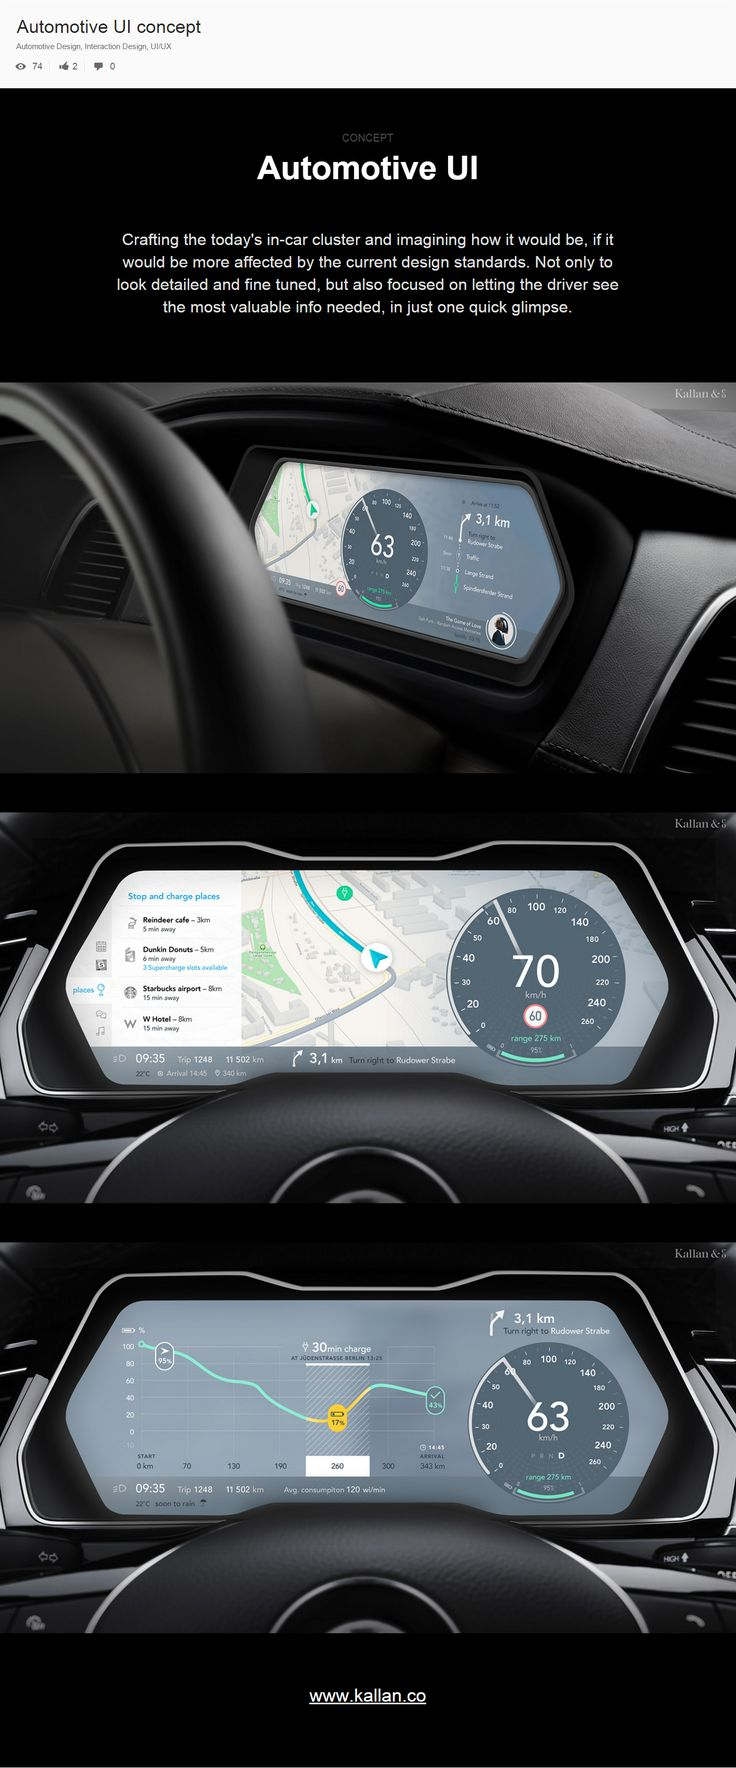 Automotive UI concept, designed by Kallan & Co